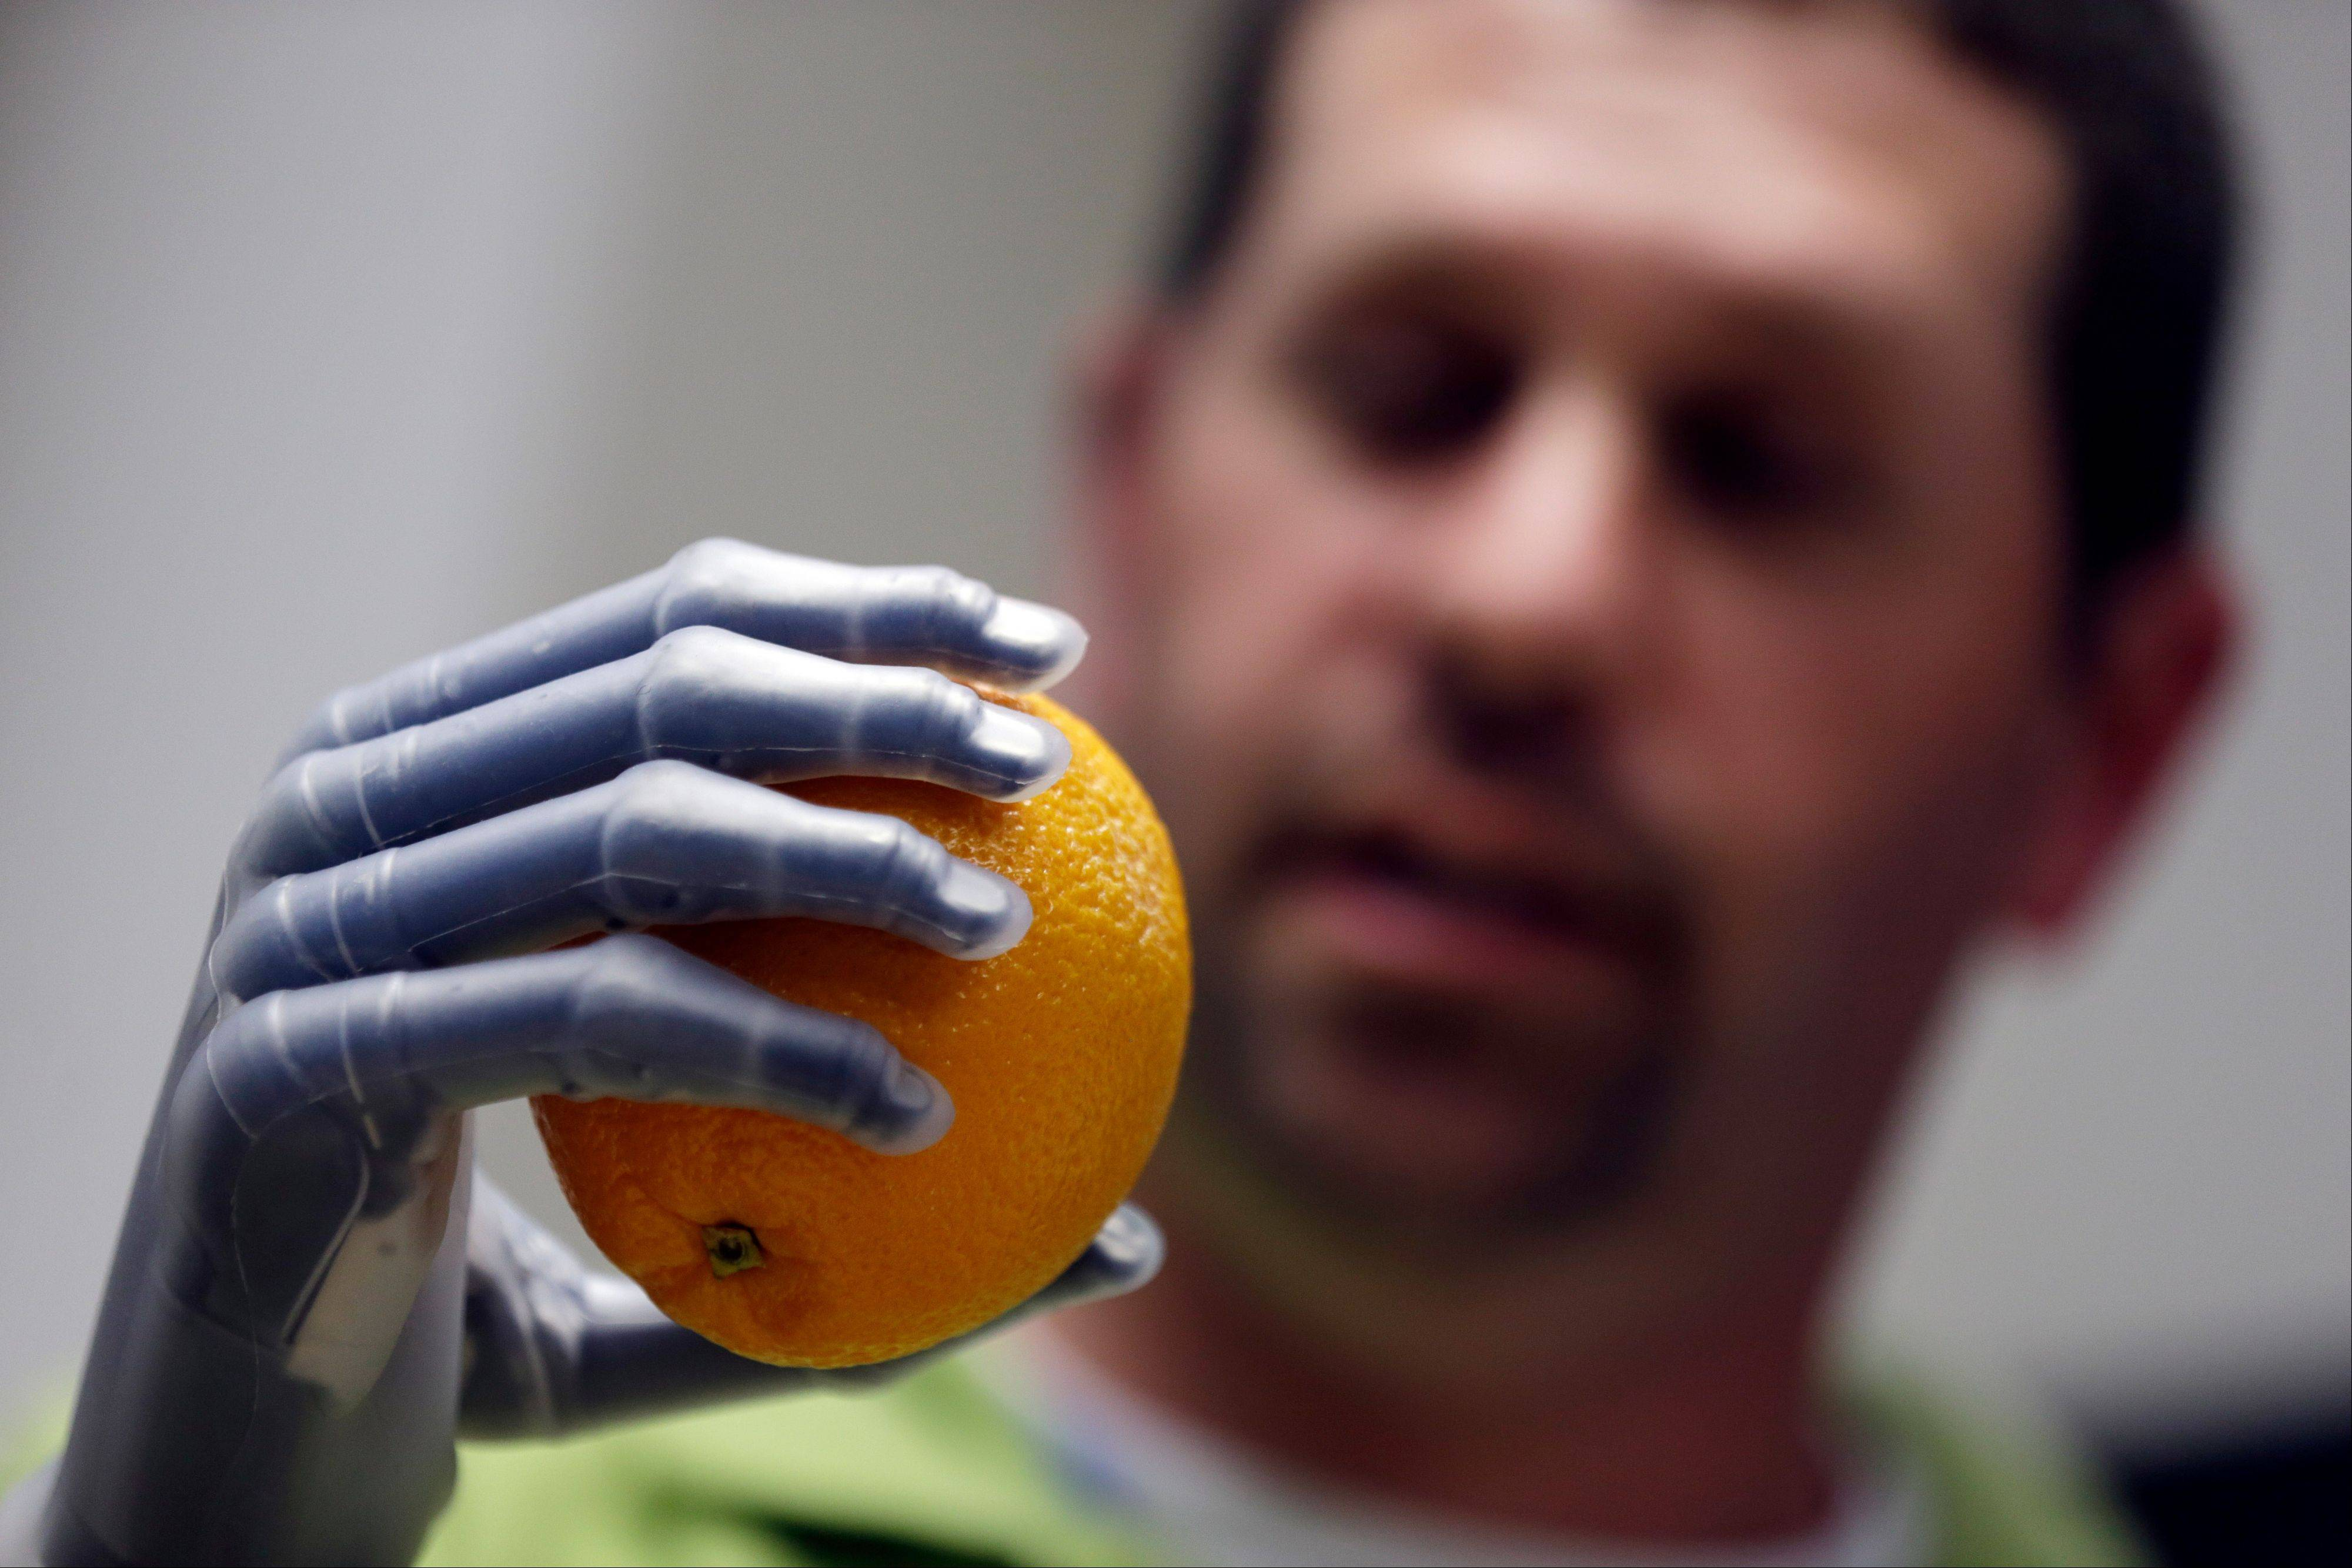 Double amputee Jason Koger, 34, of Owensboro, Ky., demonstrates his i-limb ultra revolution hands on Thursday.